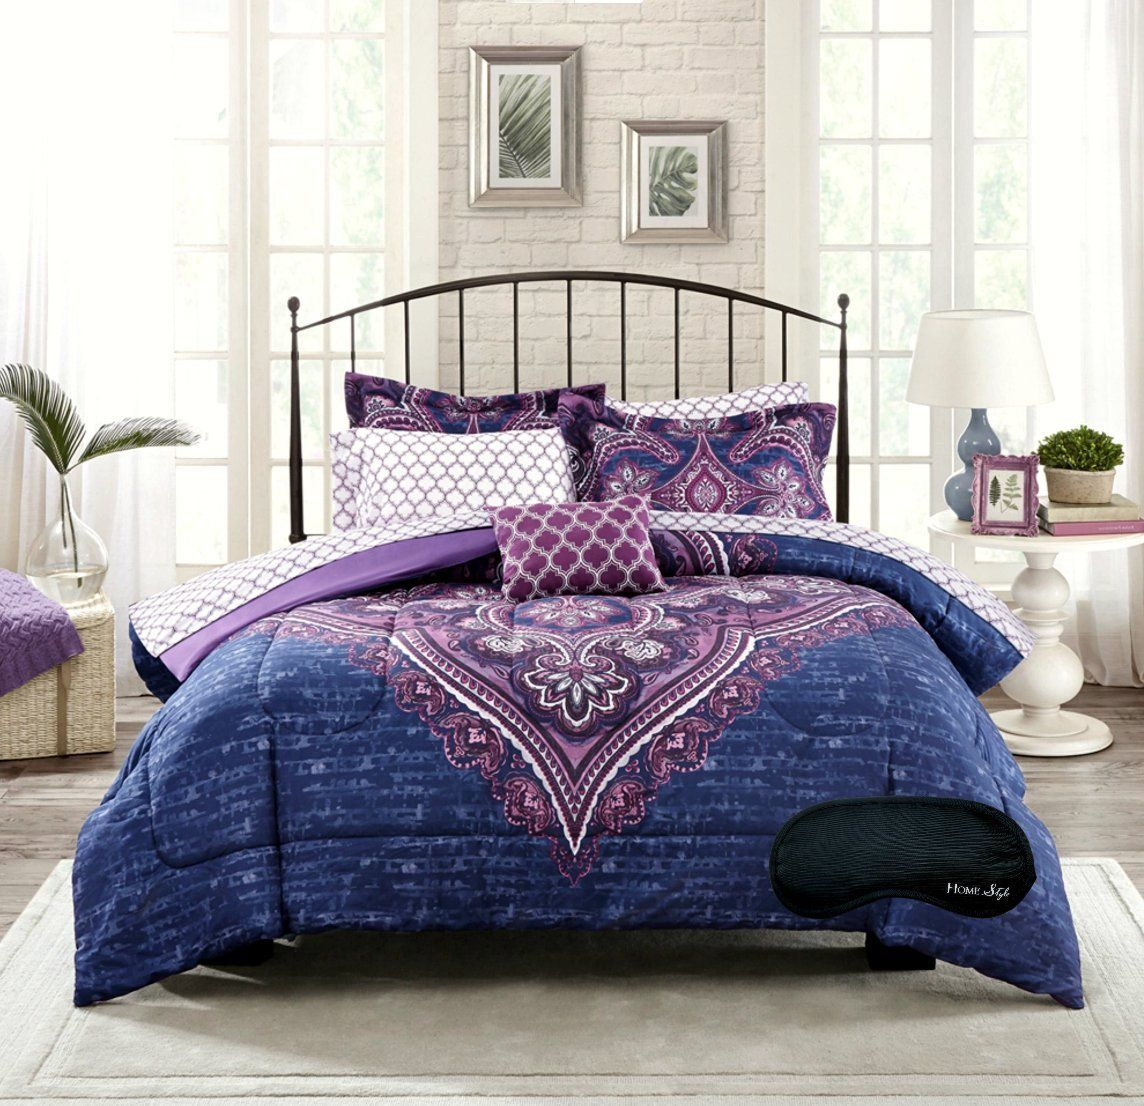 trends black sheets and image twin concept bed grey queen white rose decoration set purple bedding gold files appealing for comforter